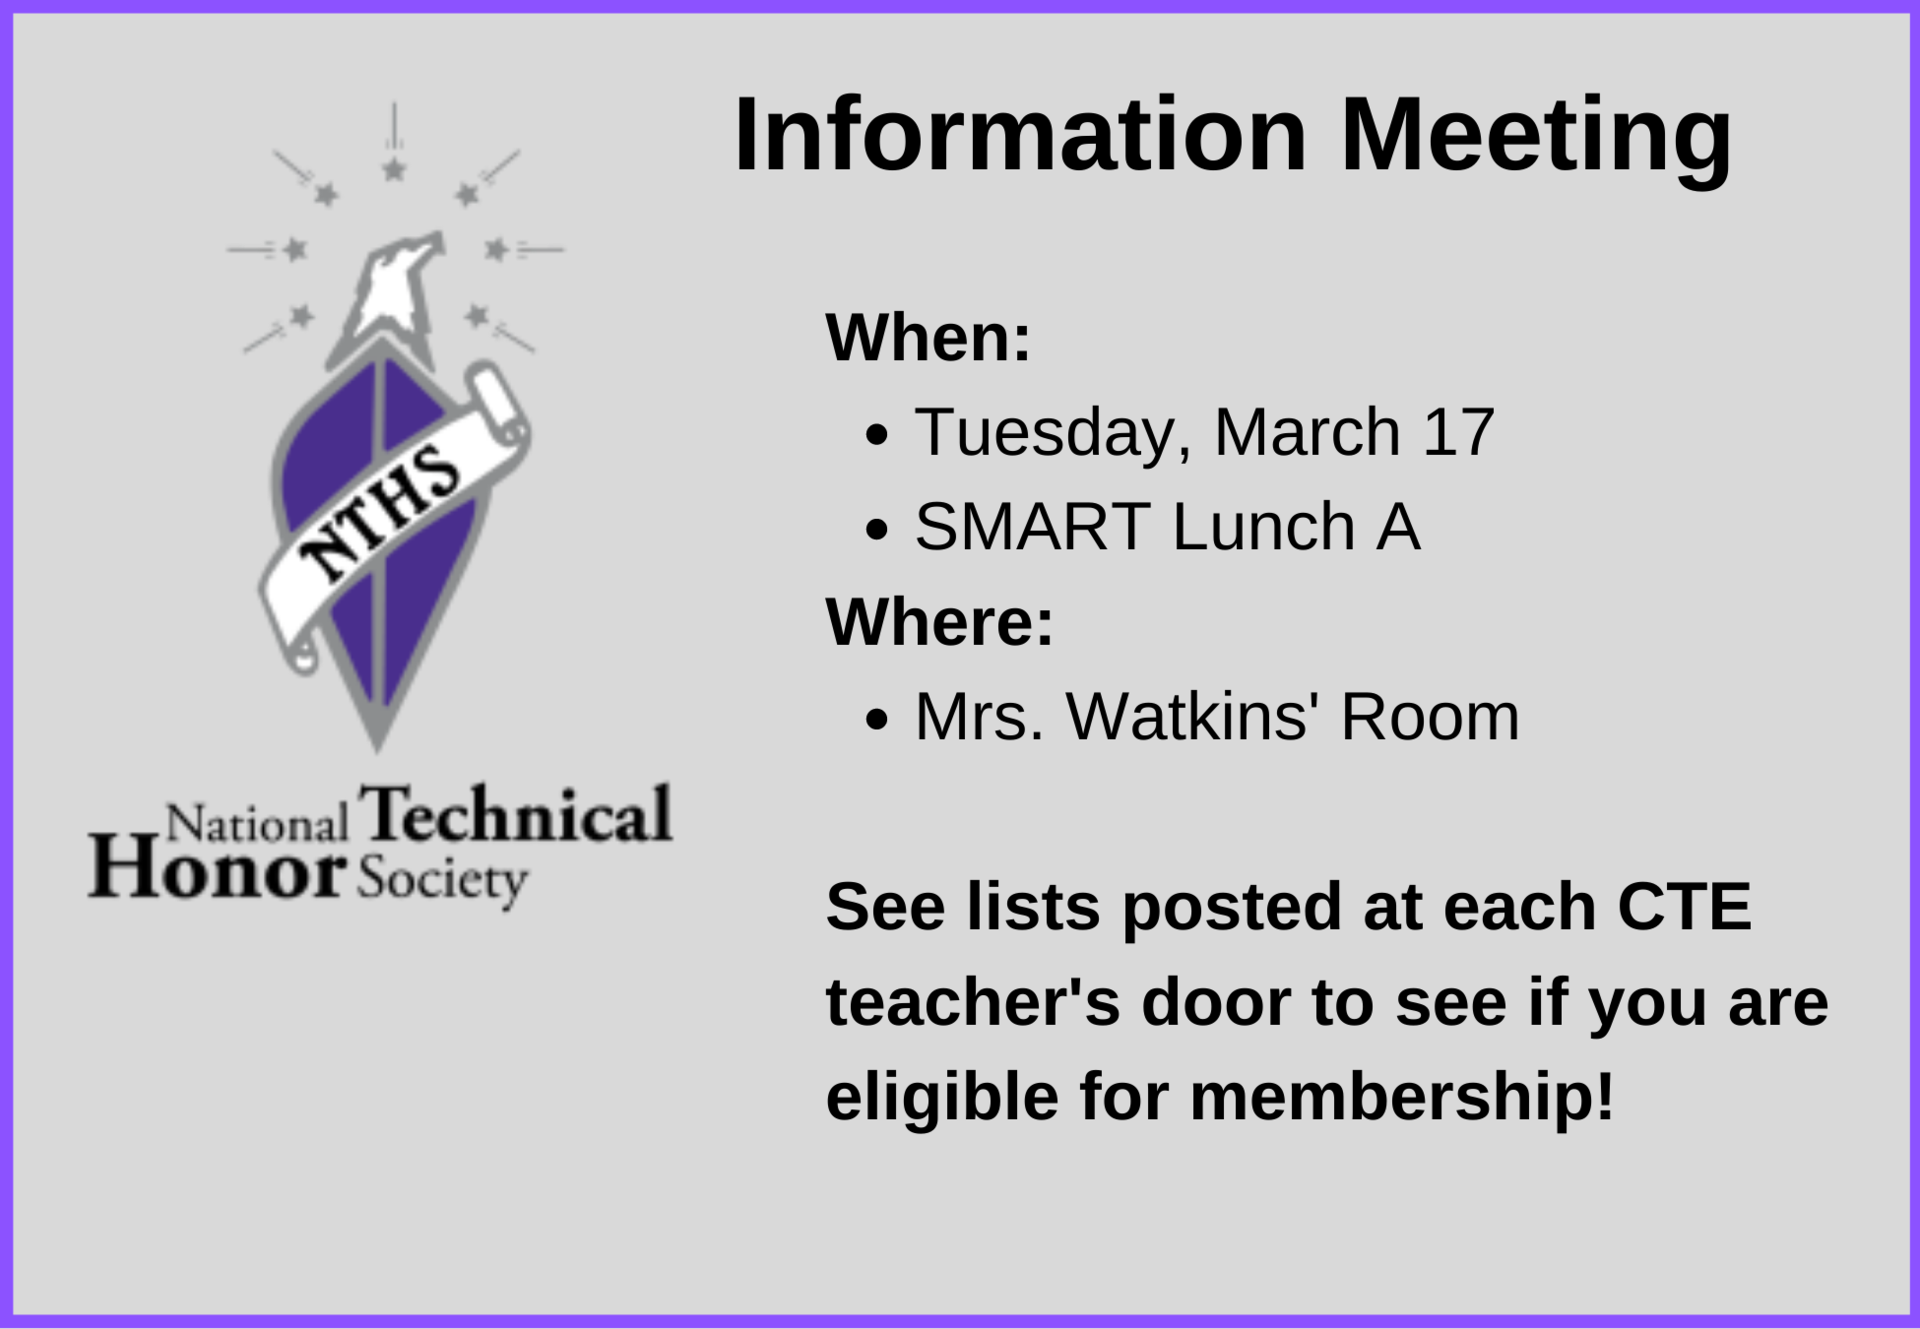 NTHS Information Meeting